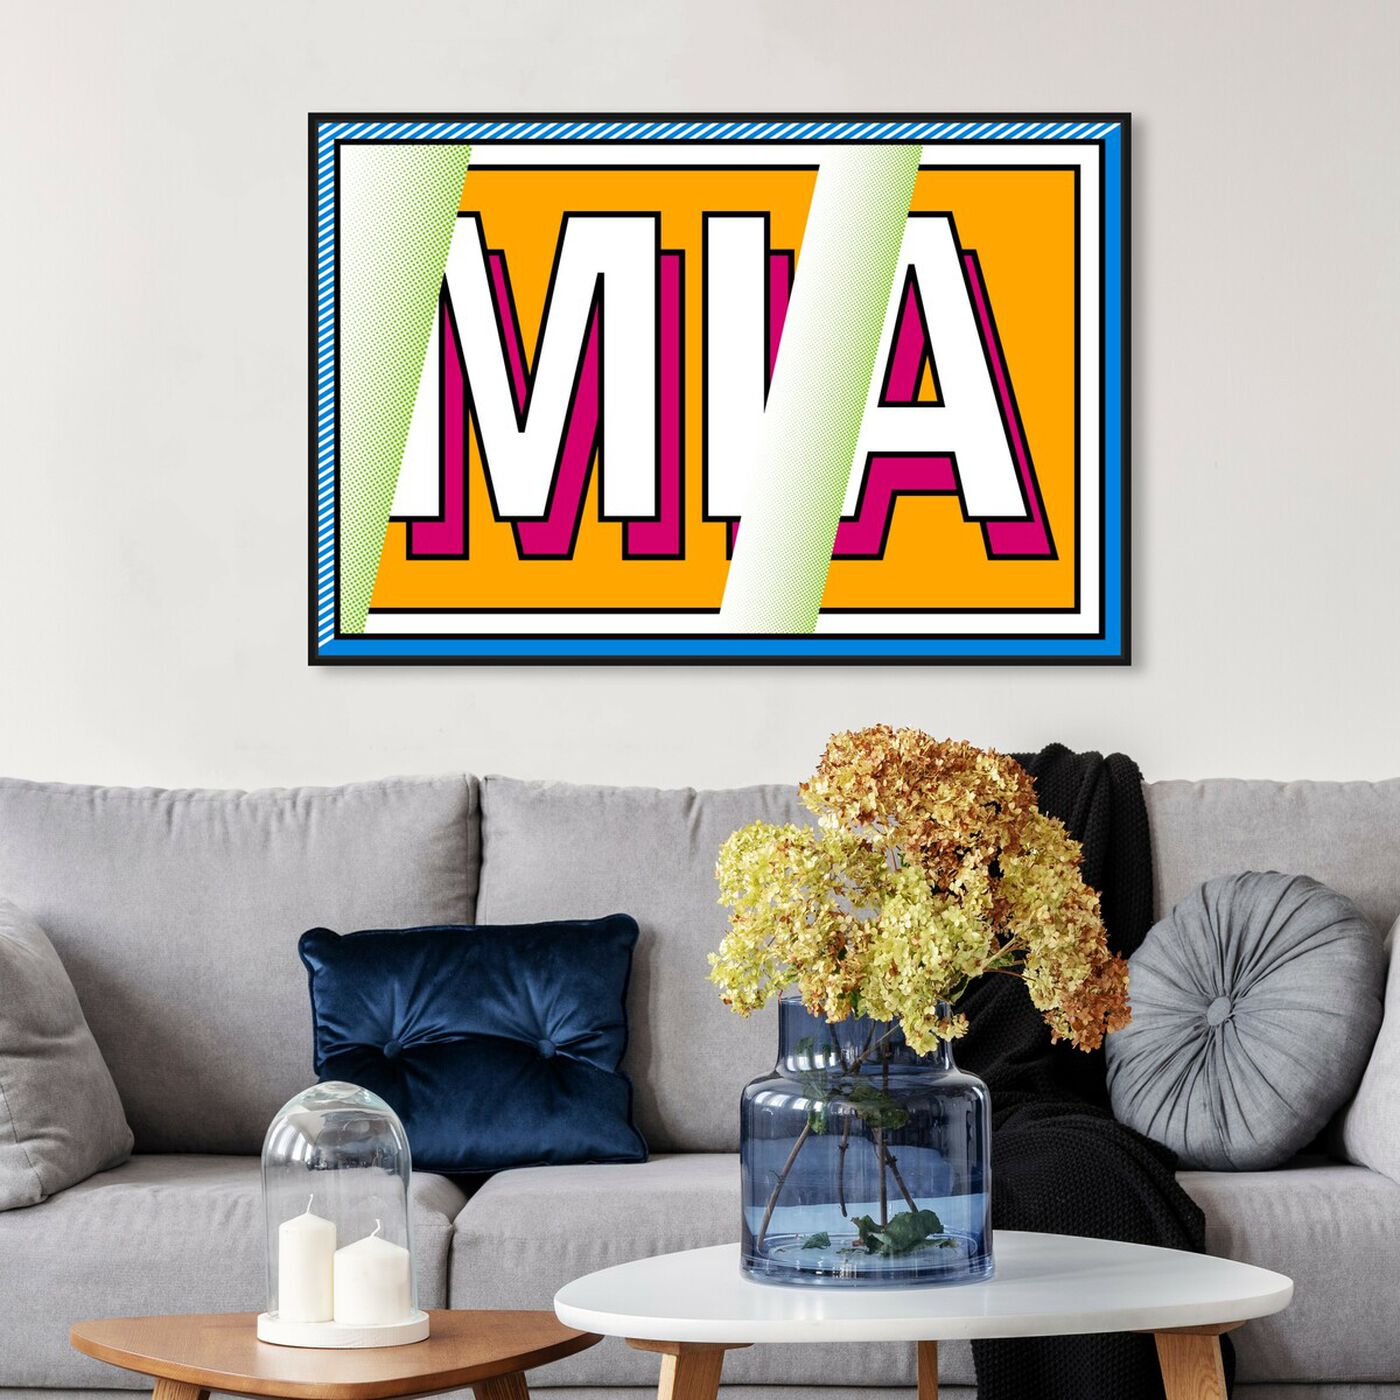 Hanging view of M-I-A featuring advertising and comics art.